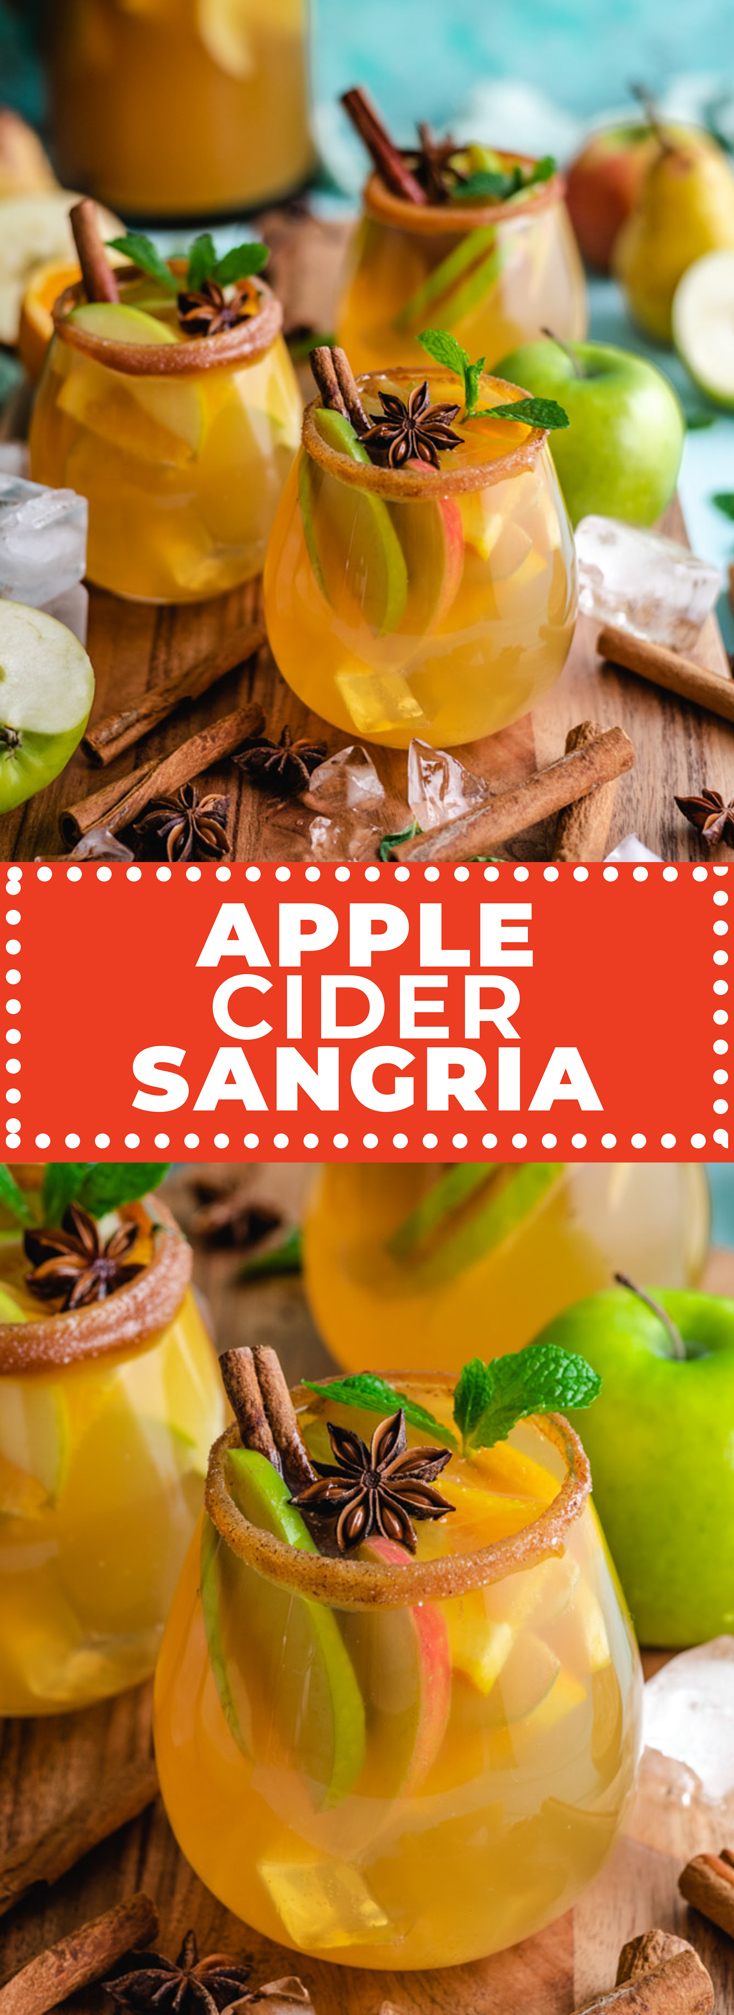 Light, refreshing, easy-to-make, and bursting with flavor, this fruit-loaded Apple Cider Sangria is the perfect big-batch Fall drink. | hostthetoast.com